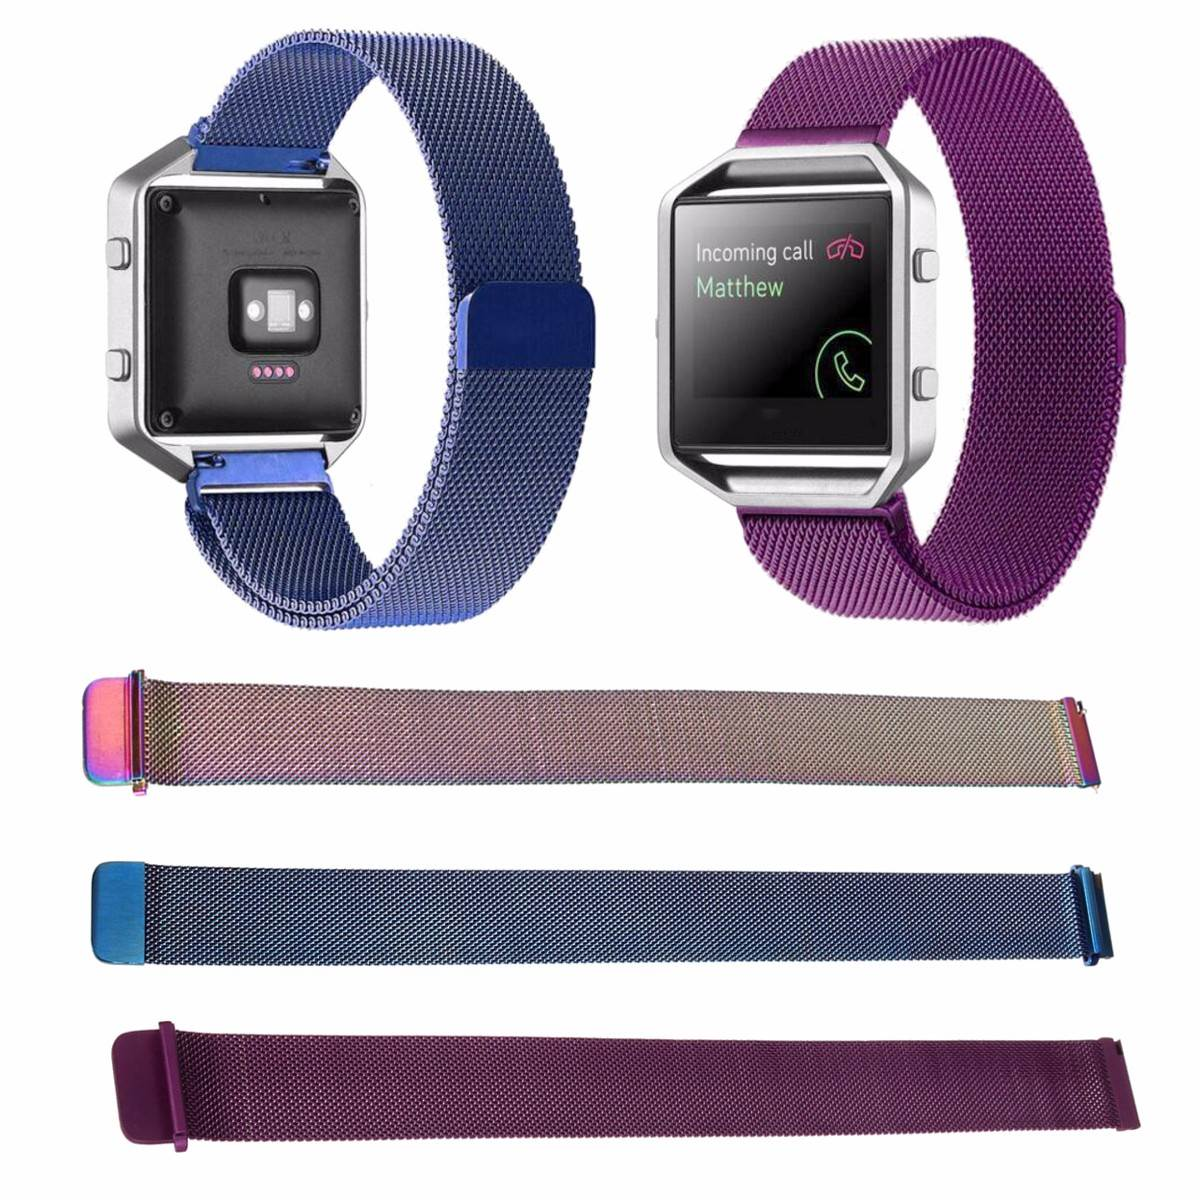 New Arrival Metal Frame + Milanese Magnetic Watchband Wrist Watch Strap For Fitbit Blaze Tracker Replcement Watchstraps crested milanese loop strap metal frame for fitbit blaze stainless steel watch band magnetic lock bracelet wristwatch bracelet